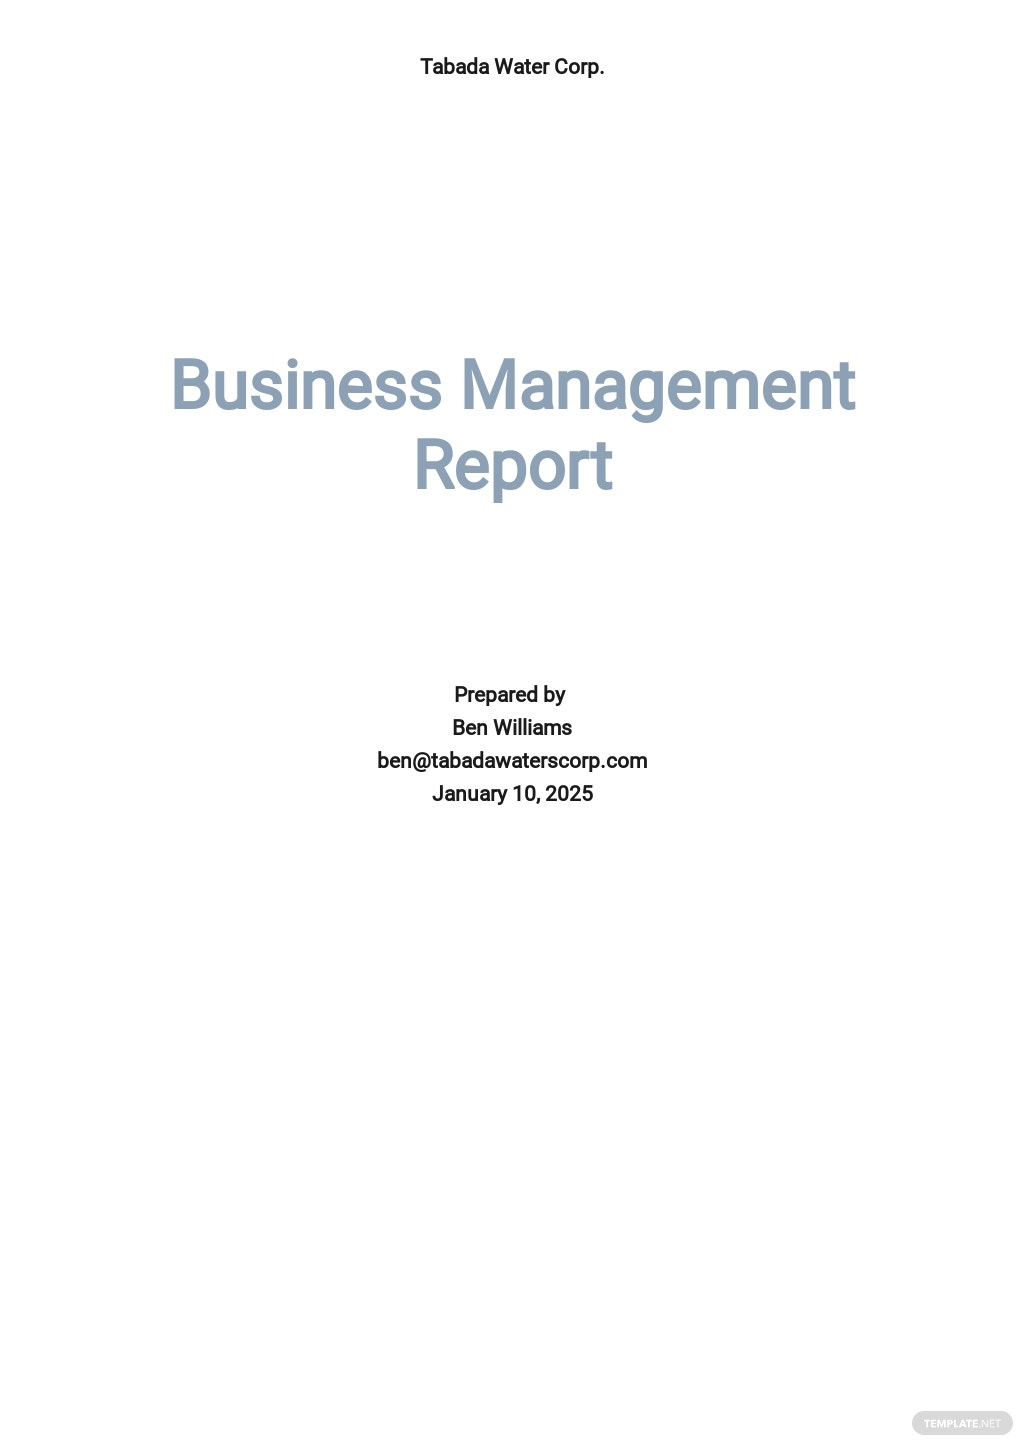 Business Management Report Template